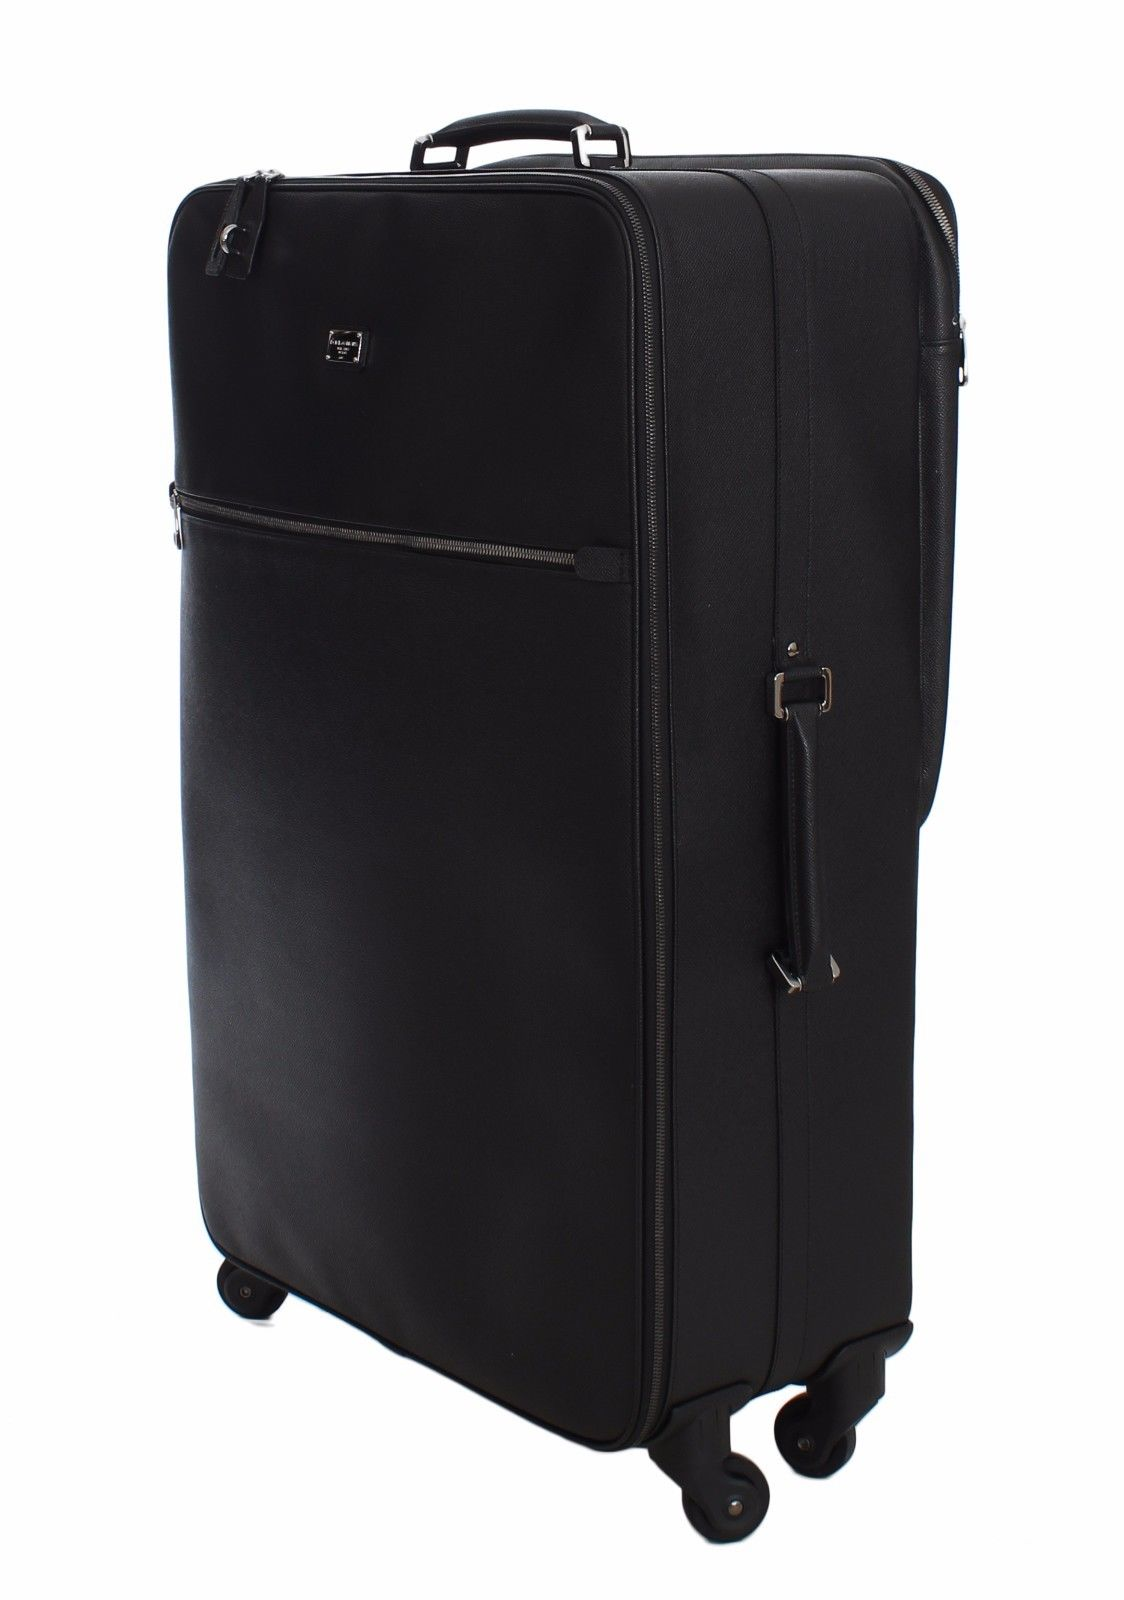 989d621f27 Dolce   Gabbana Luggage Bag Black Leather Travel Suitcase Trolley ...